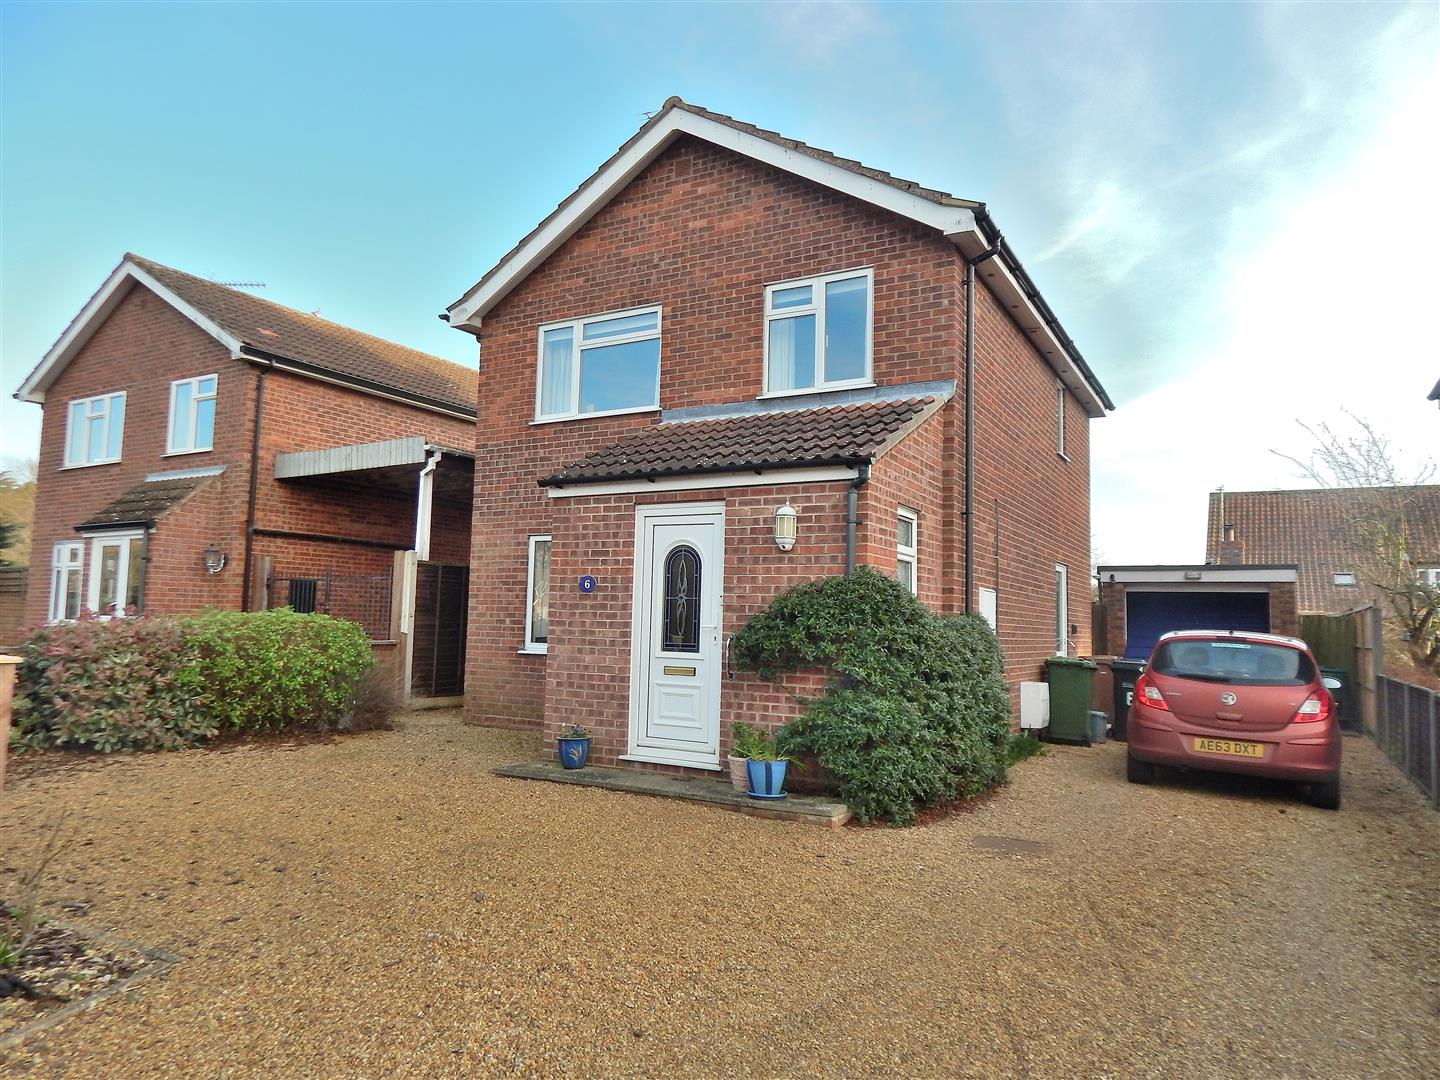 3 bed detached house for sale in King's Lynn, PE31 6LY - Property Image 1